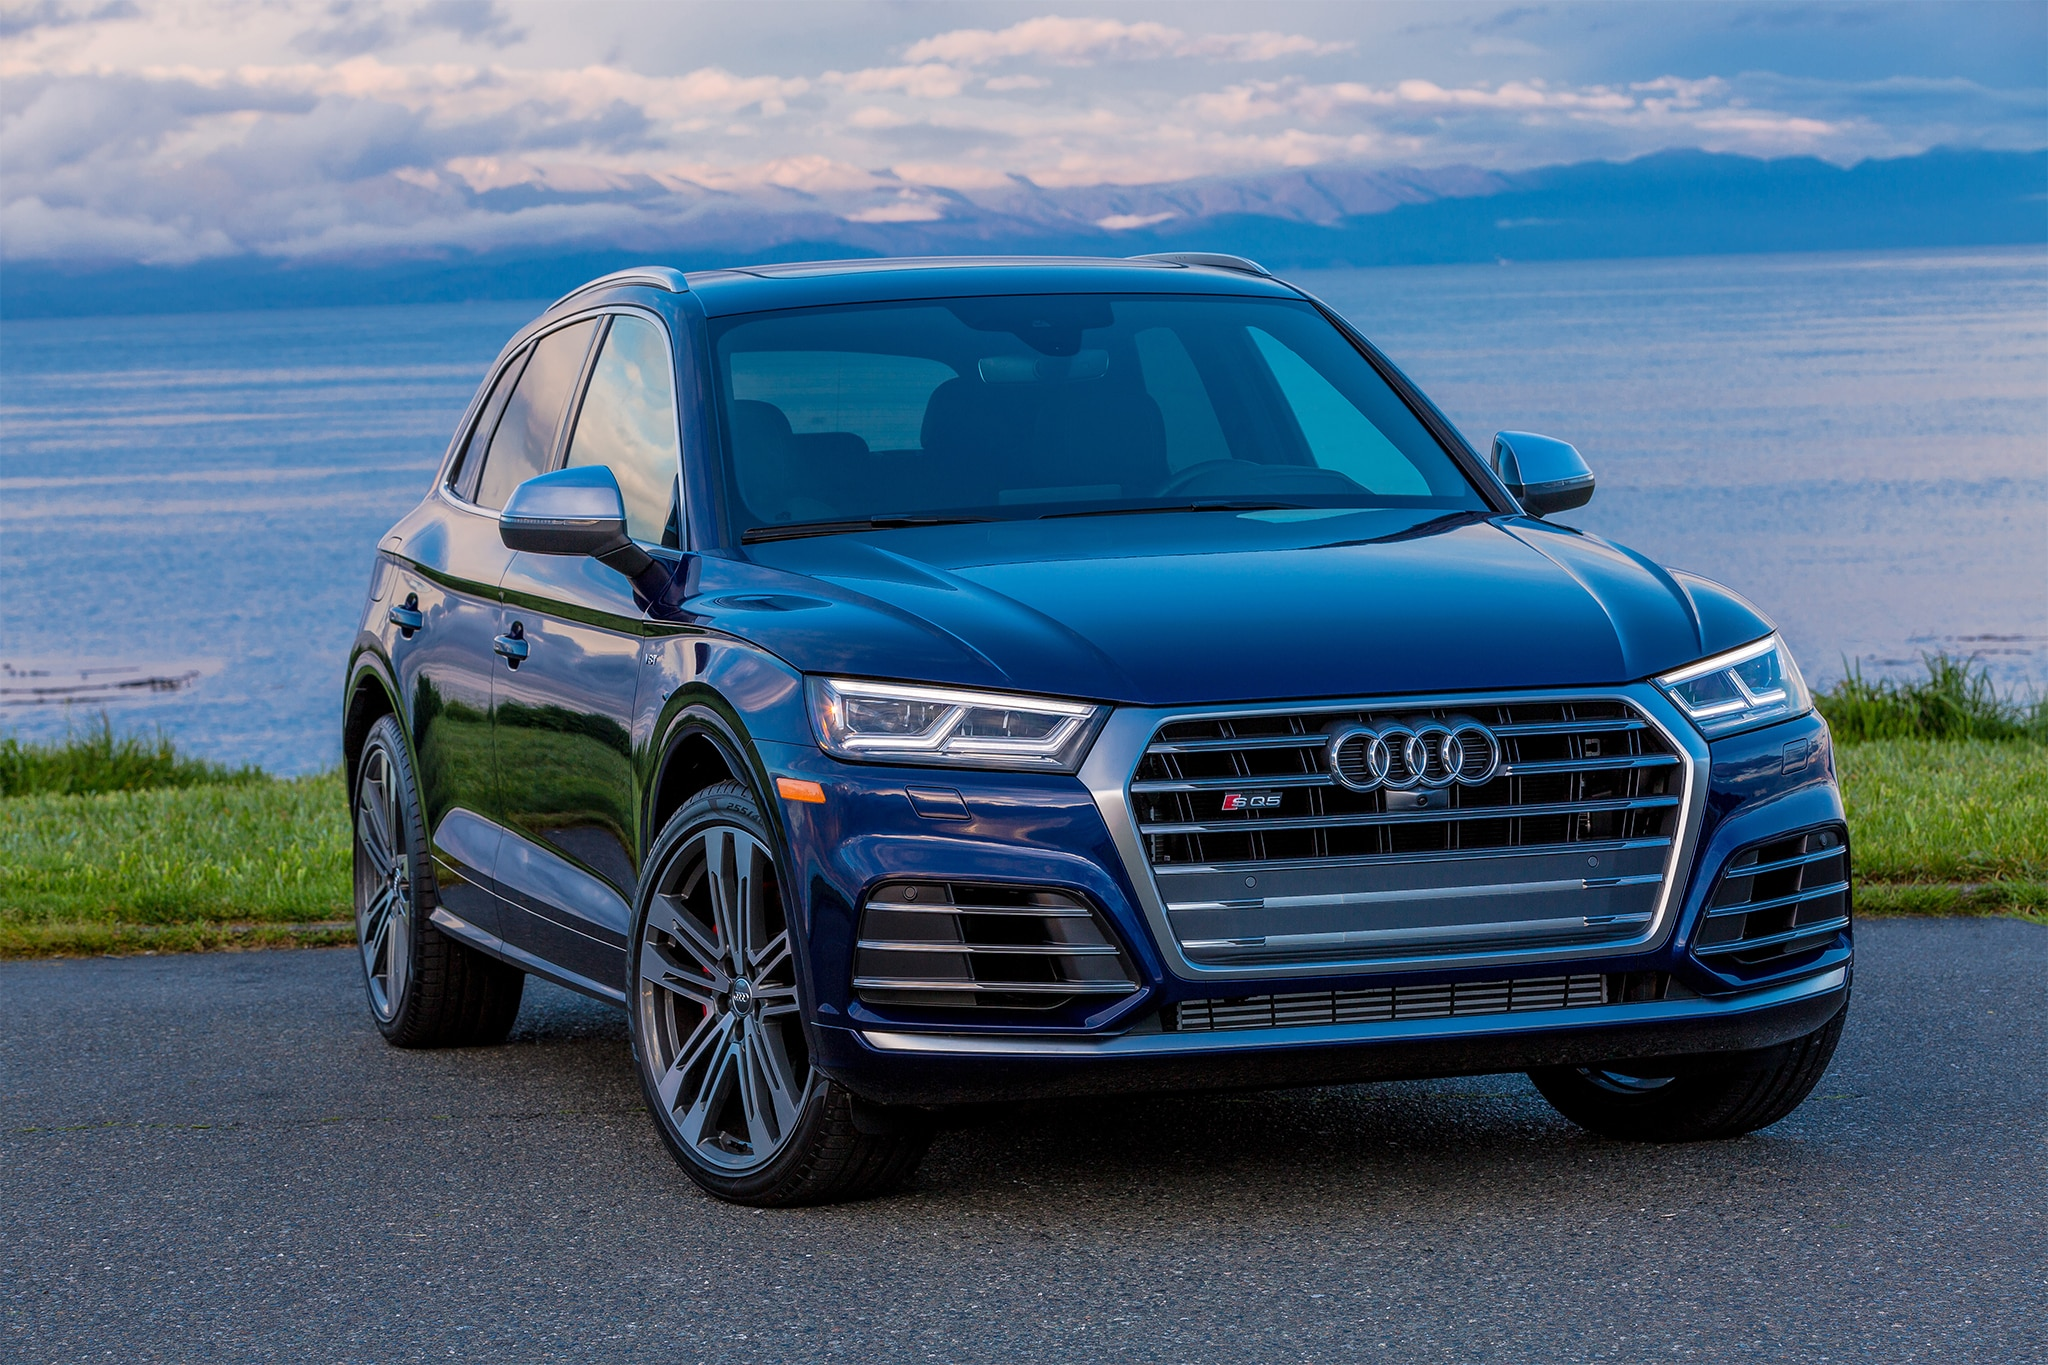 2018 Audi Sq5 First Drive Review Automobile Magazine